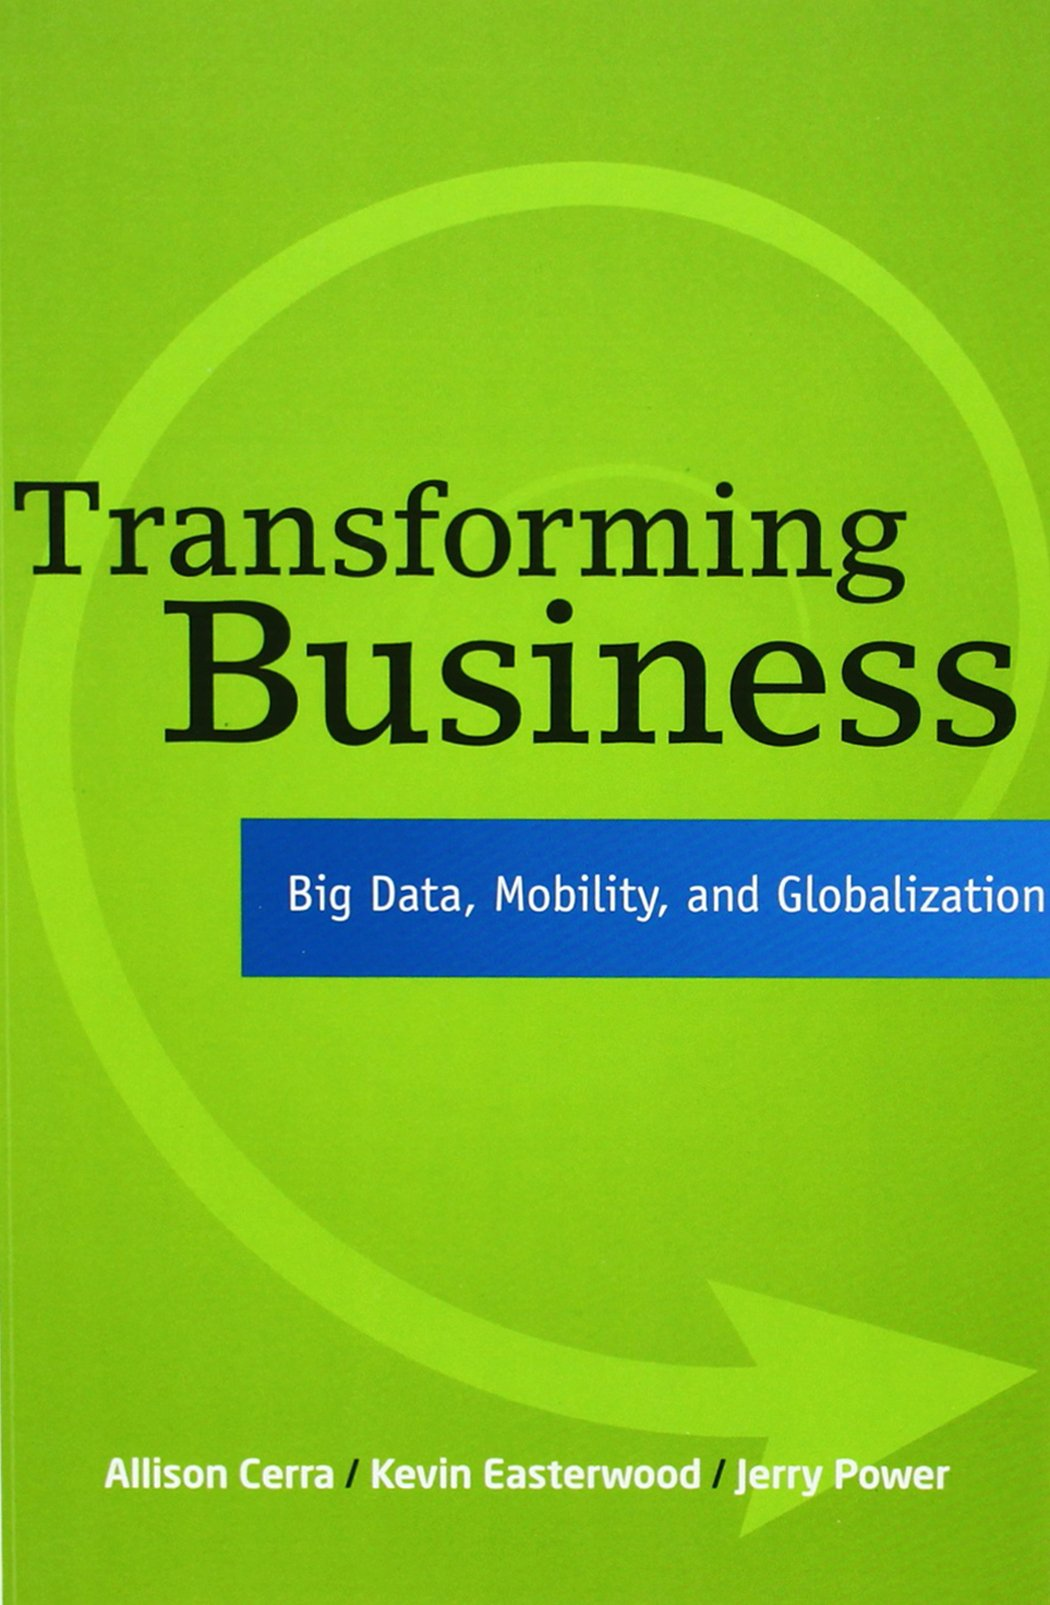 Download Transforming Business: Big Data, Mobility, and Globalization PDF